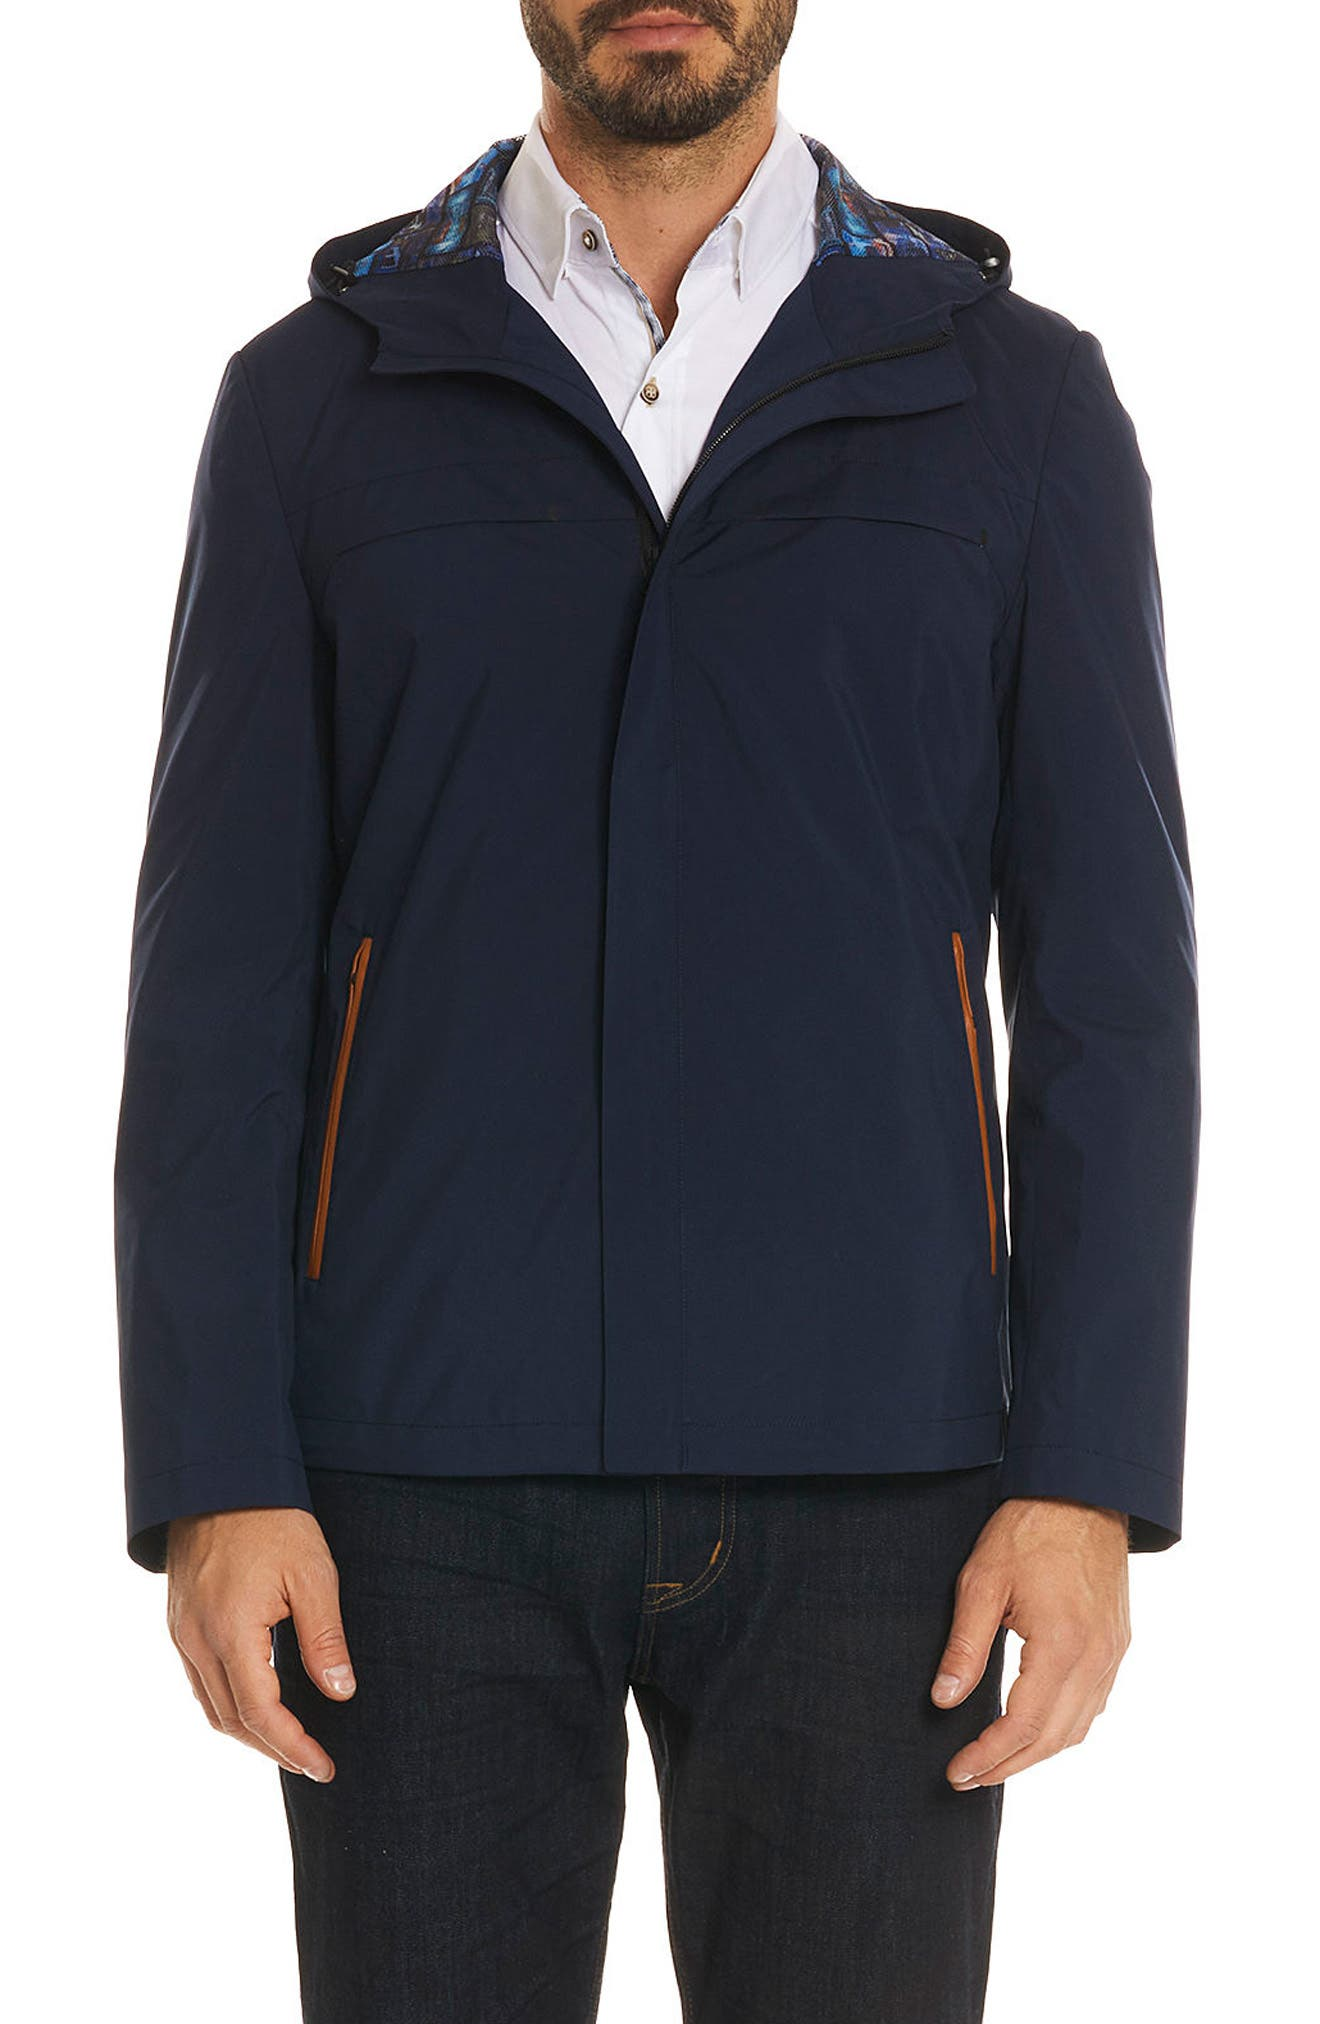 Grafton Jacket,                             Main thumbnail 1, color,                             410